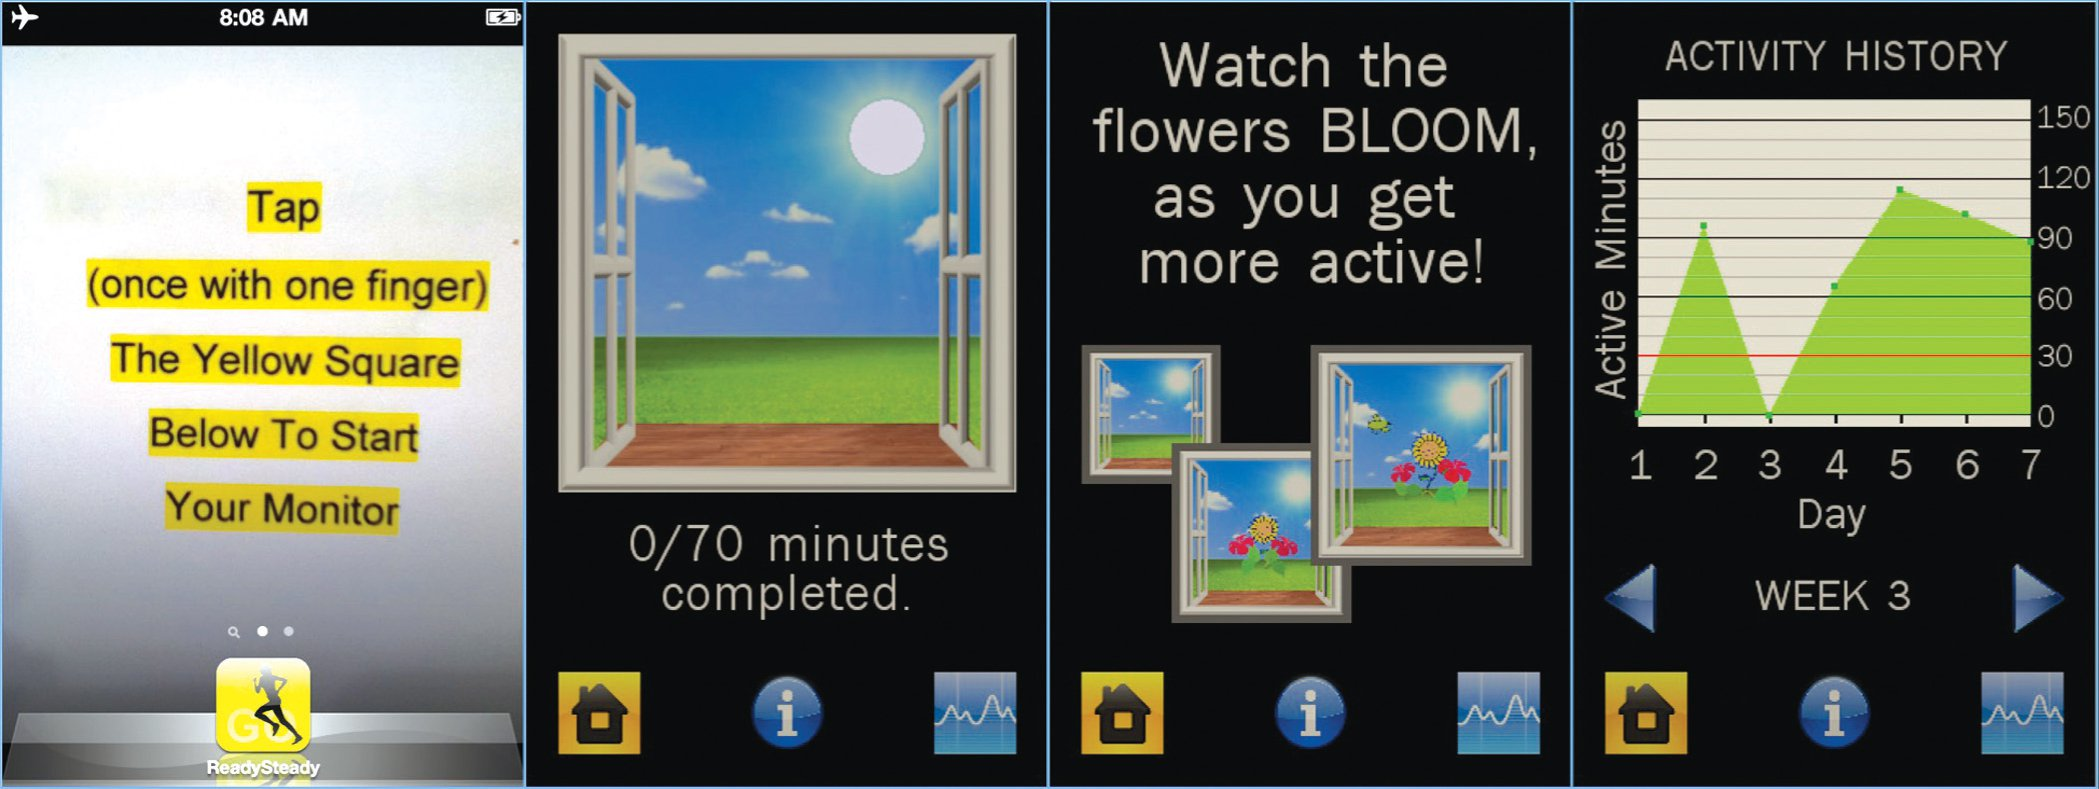 Screen displays illustrating (from left to right), wallpaper, main app, information, and activity history screens.